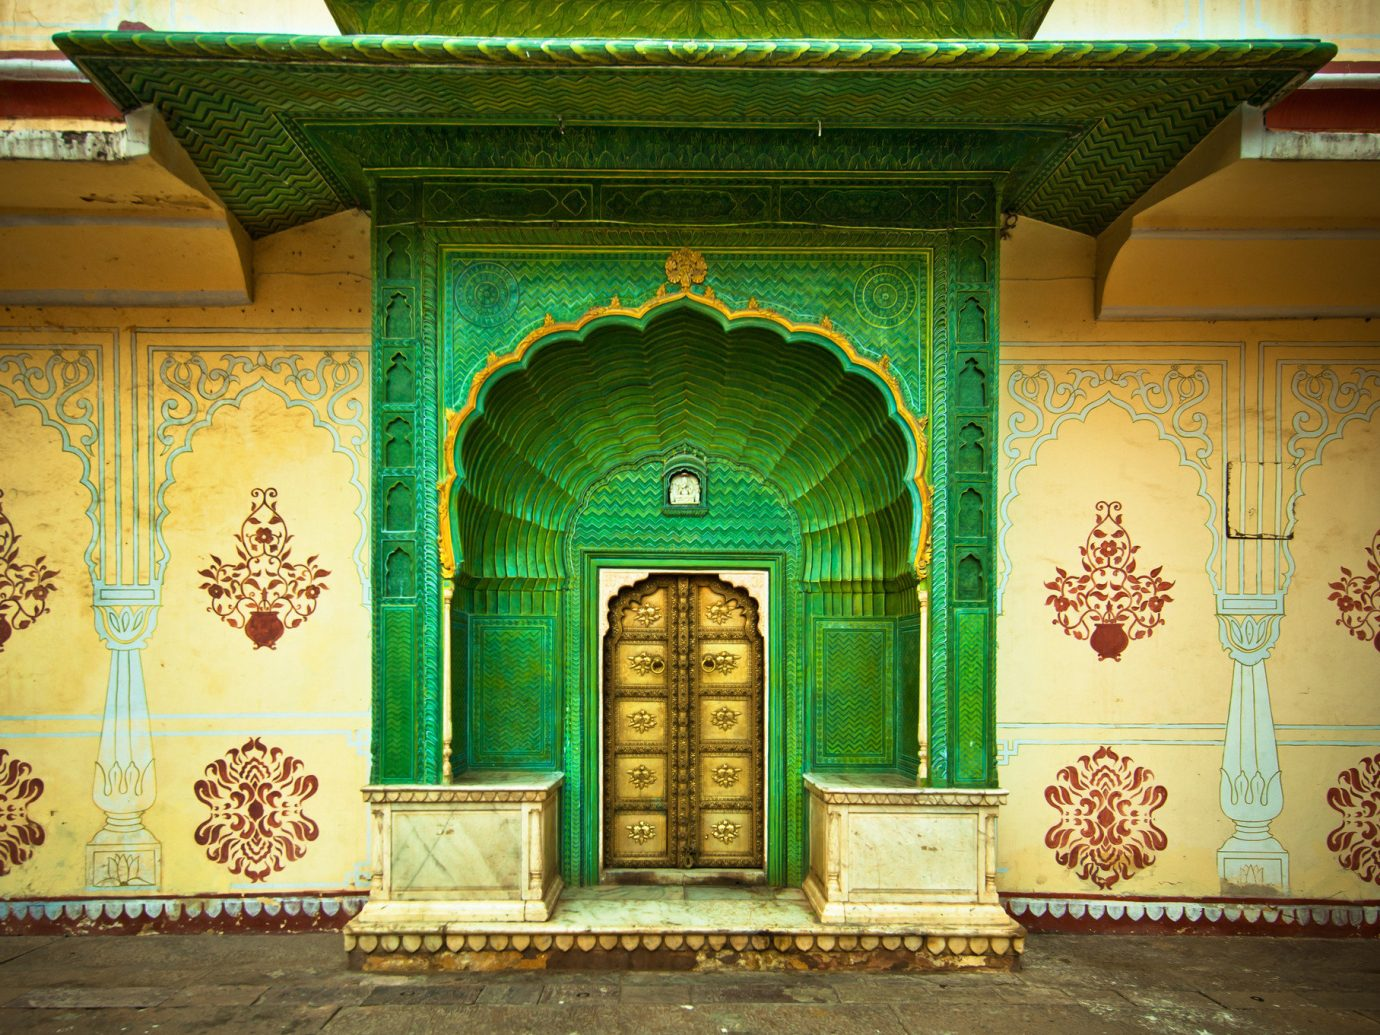 Offbeat Trip Ideas color building wall art ancient history shrine temple hindu temple place of worship palace painted arch